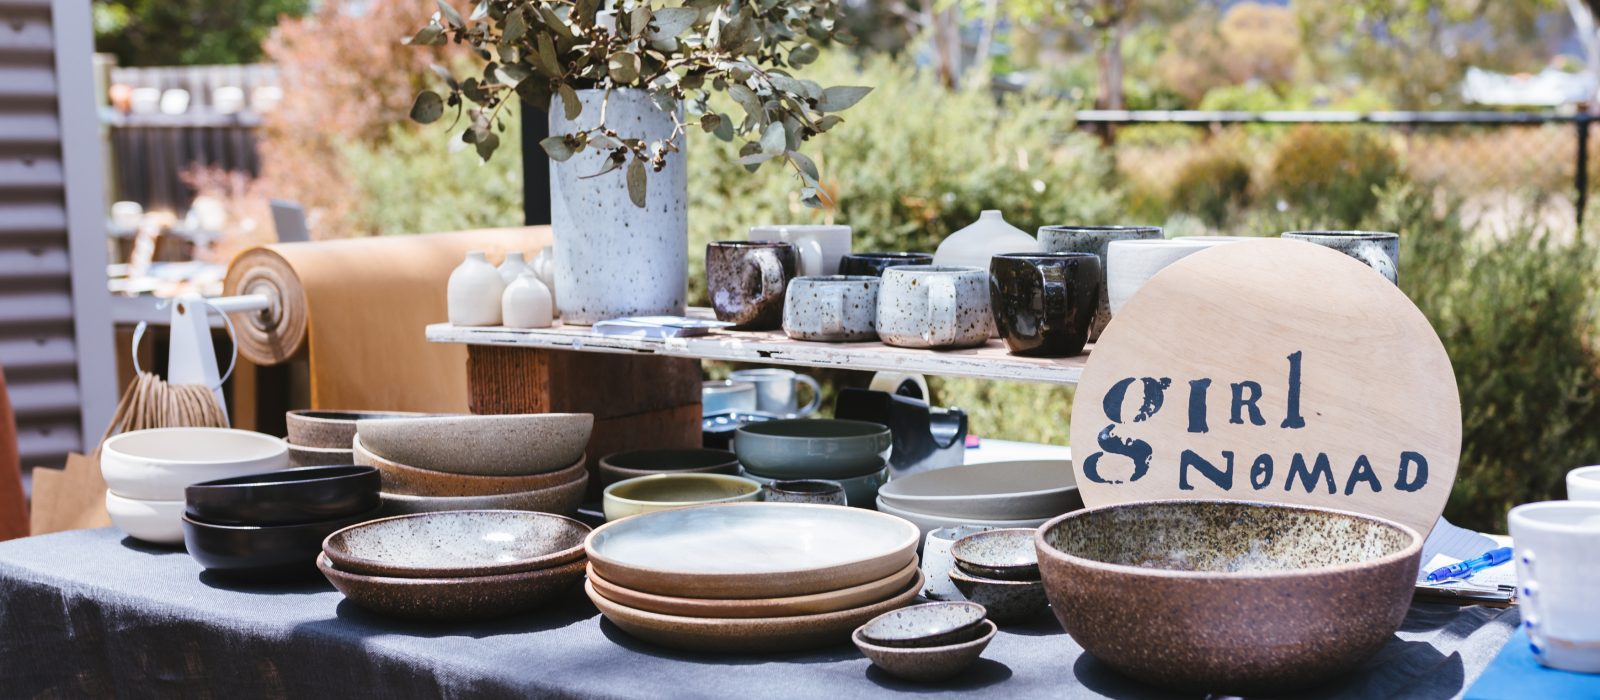 Girl Nomad Ceramics. Photo: 5 Foot Photography.